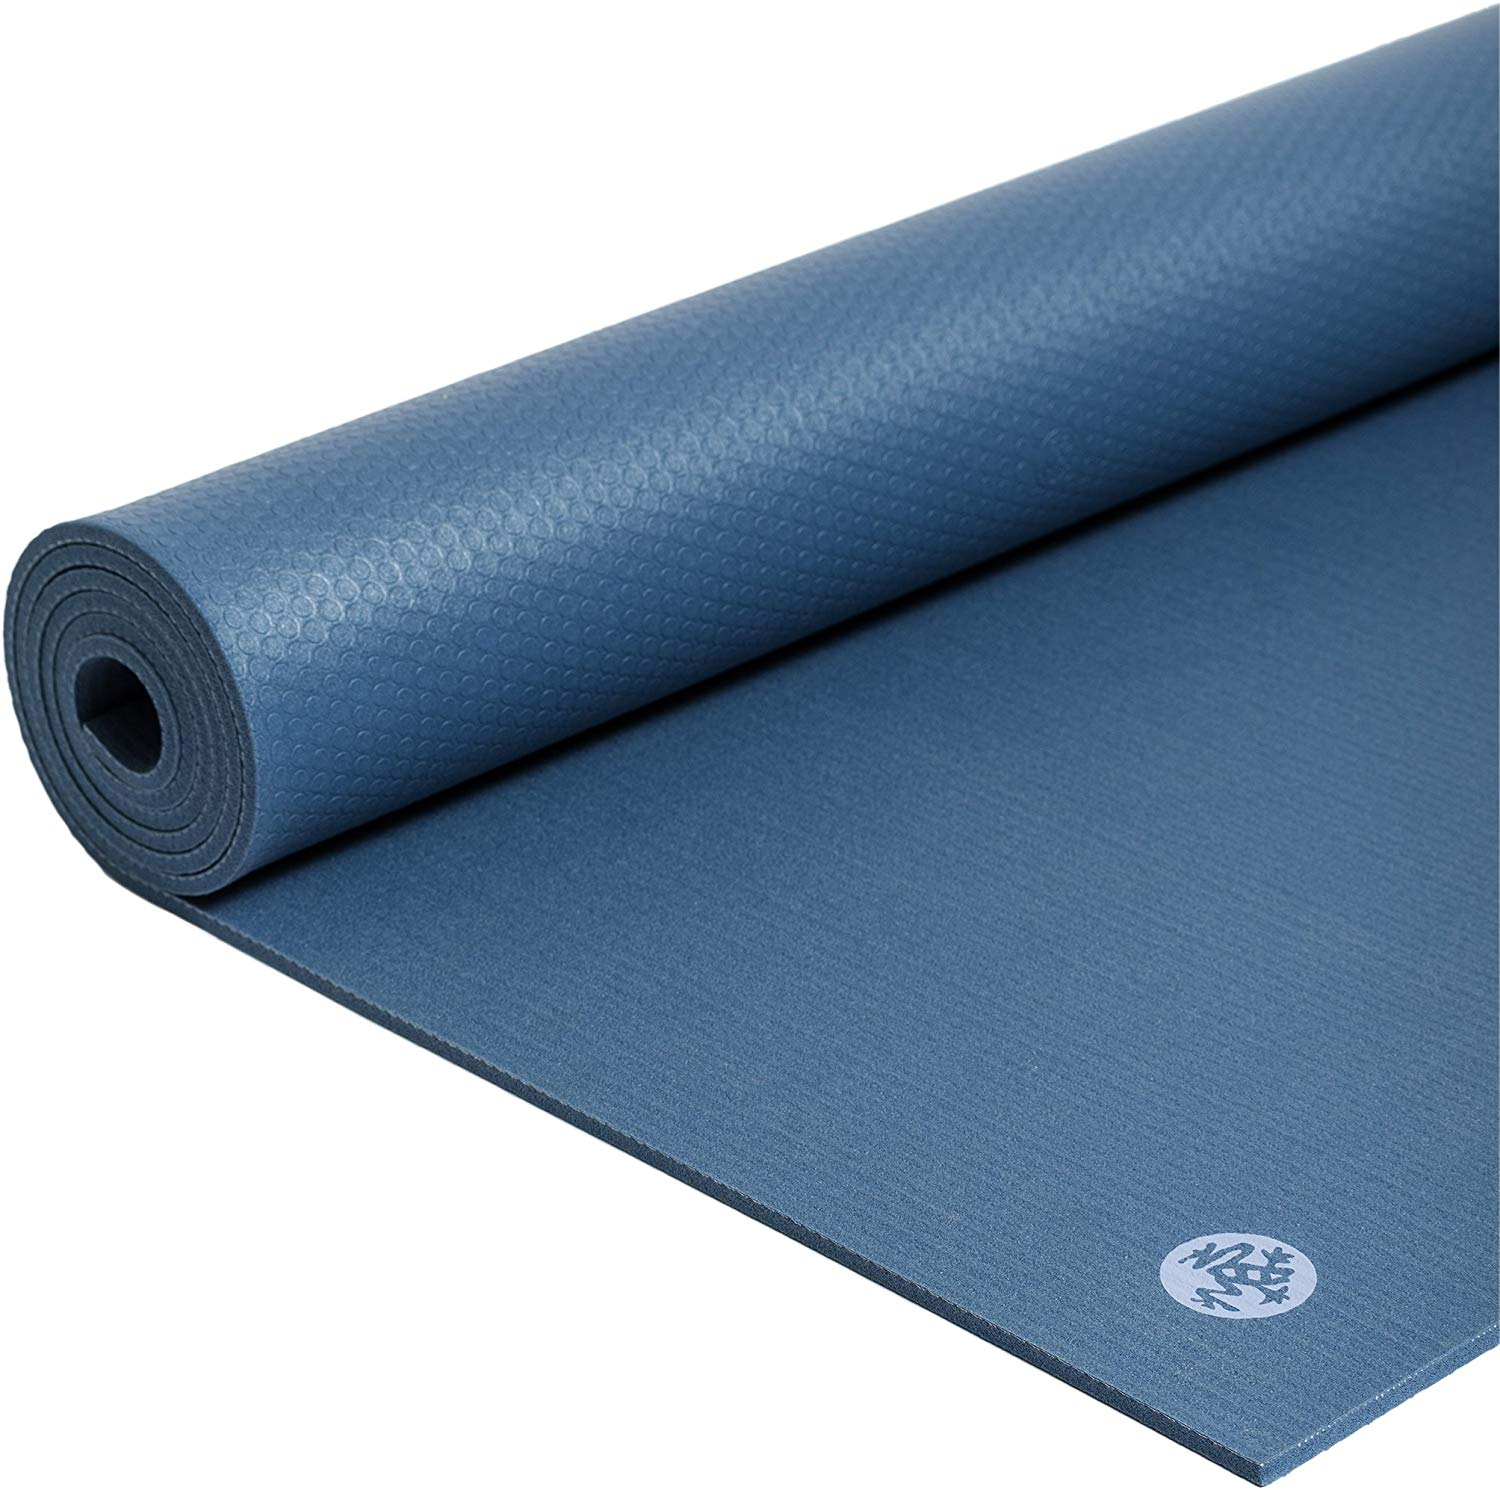 Manduka PRO Yoga Mat – Premium 6mm Thick Mat, Eco-Friendly, Oeko-Tex Certified, Chemical Free, High-Performance Grip, Ultra-Dense Cushioning for Support and Stability in Yoga, Pilates, Gym and Fitness